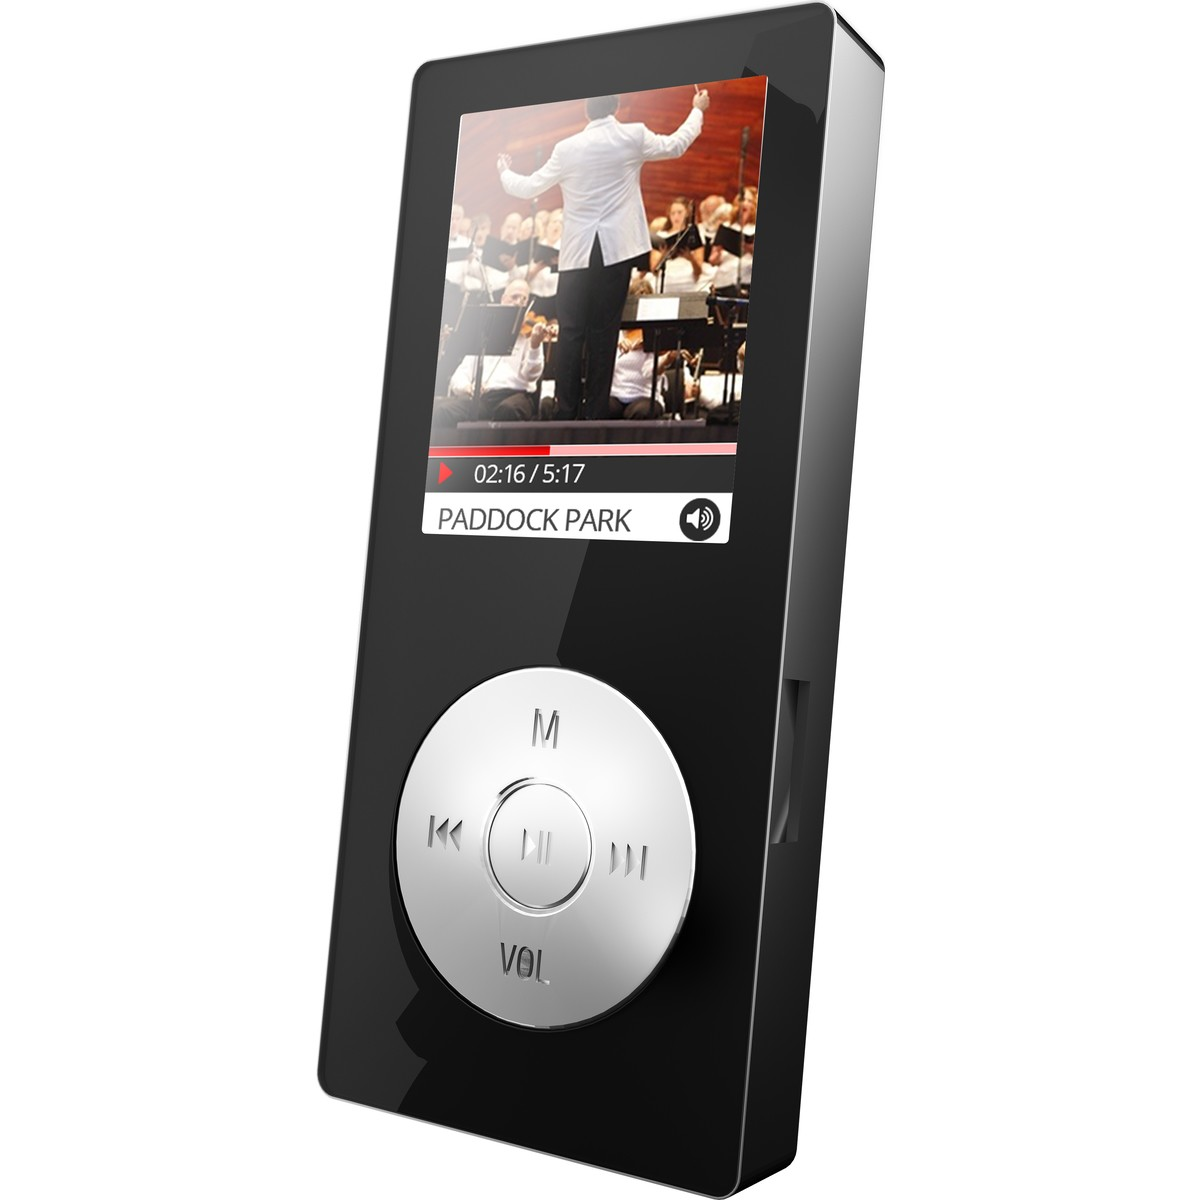 Display 32gb Laser Mp4 Player With 1 8